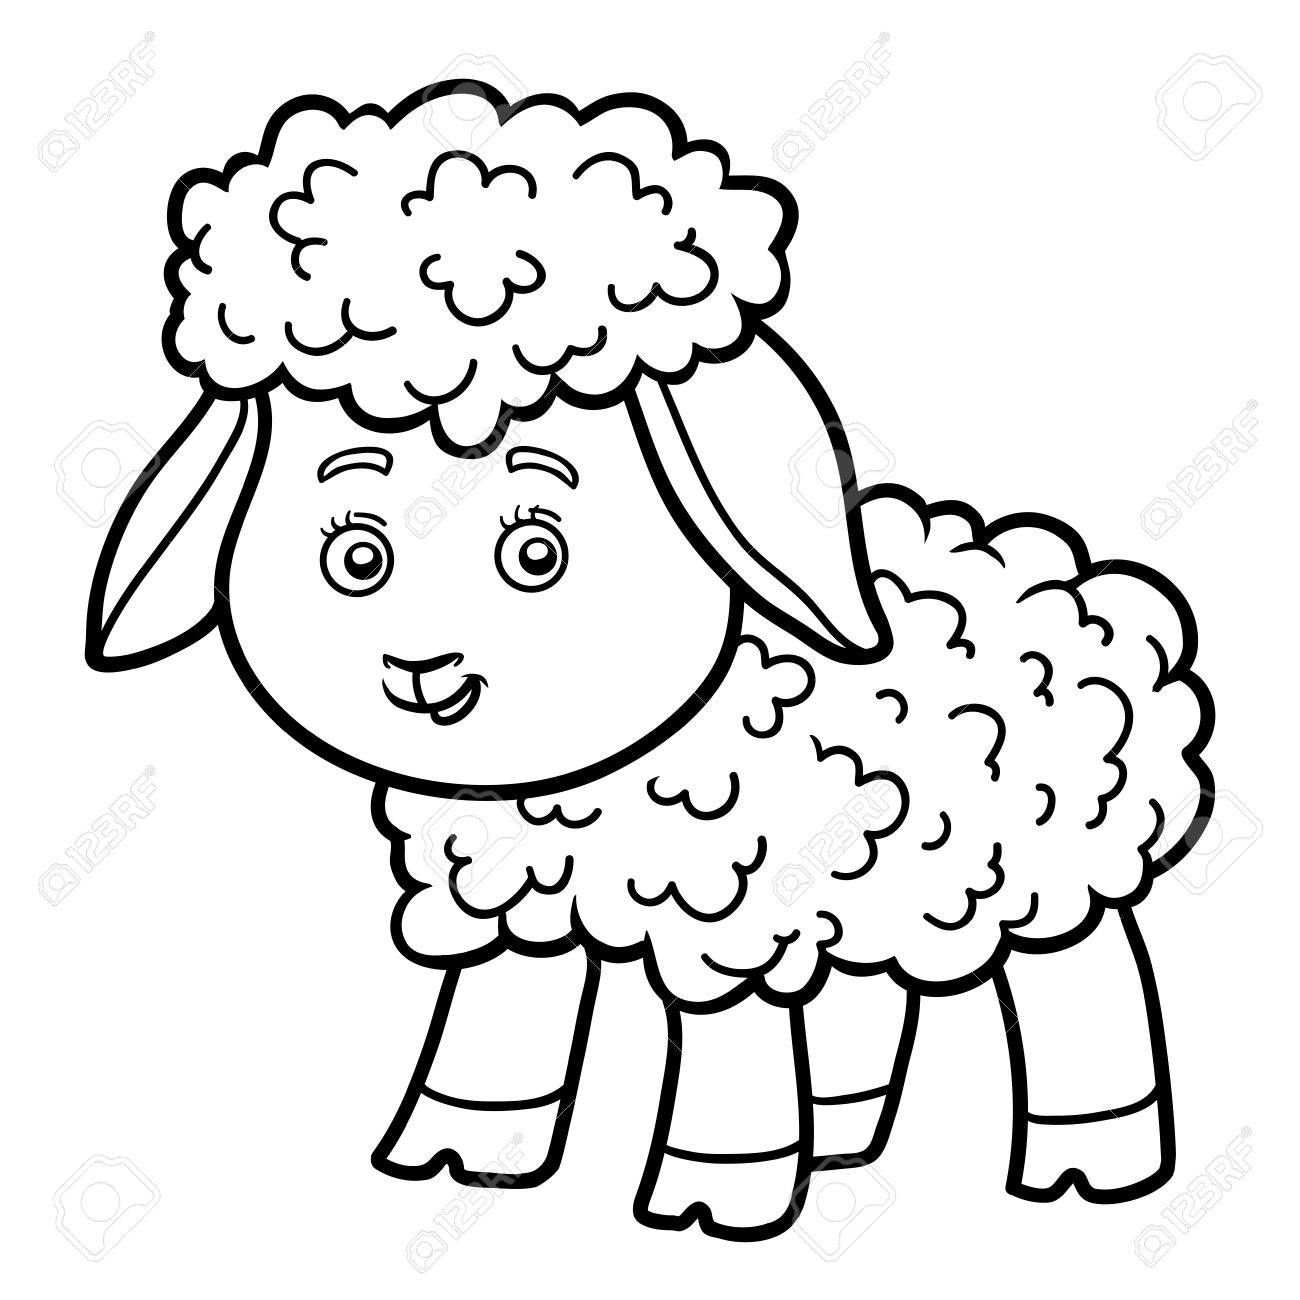 Coloring Book For Chilren, Coloring Page With Little Sheep Royalty ...